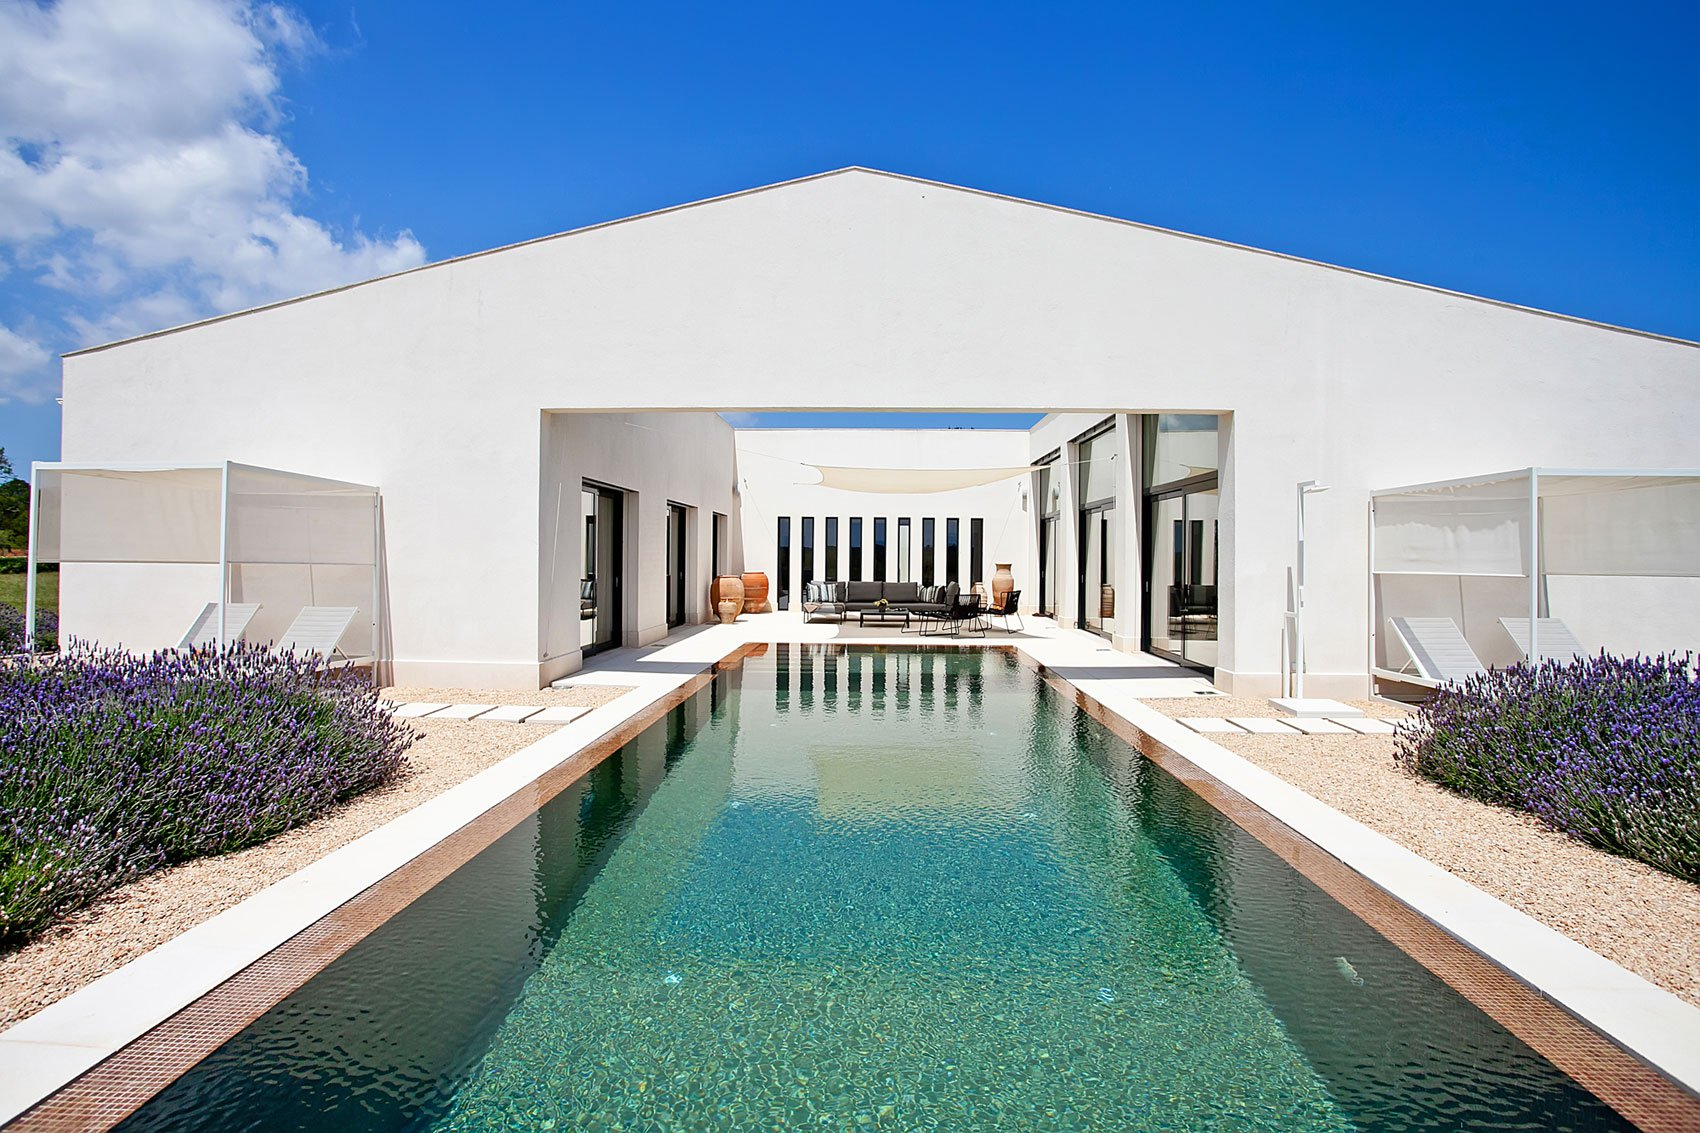 A-Holiday-Home-in-Mallorca-04